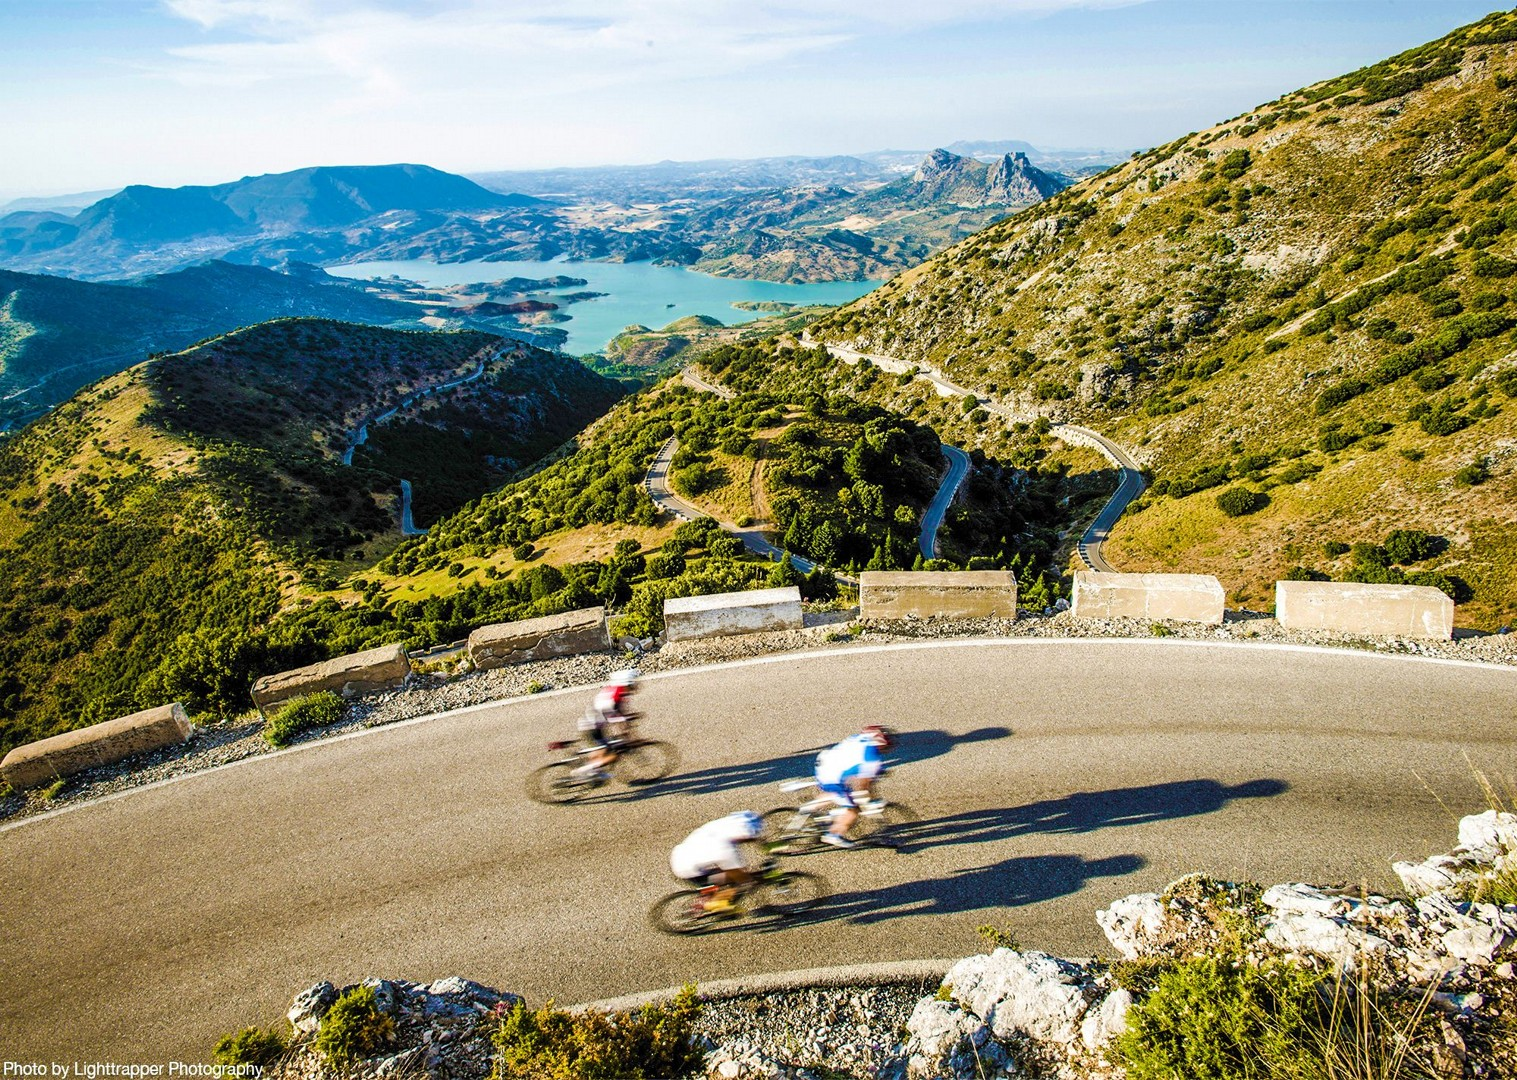 puerto-de-las-palomas-road-cycling-climb-challenge.jpg - Southern Spain - Roads of Ronda - Road Cycling